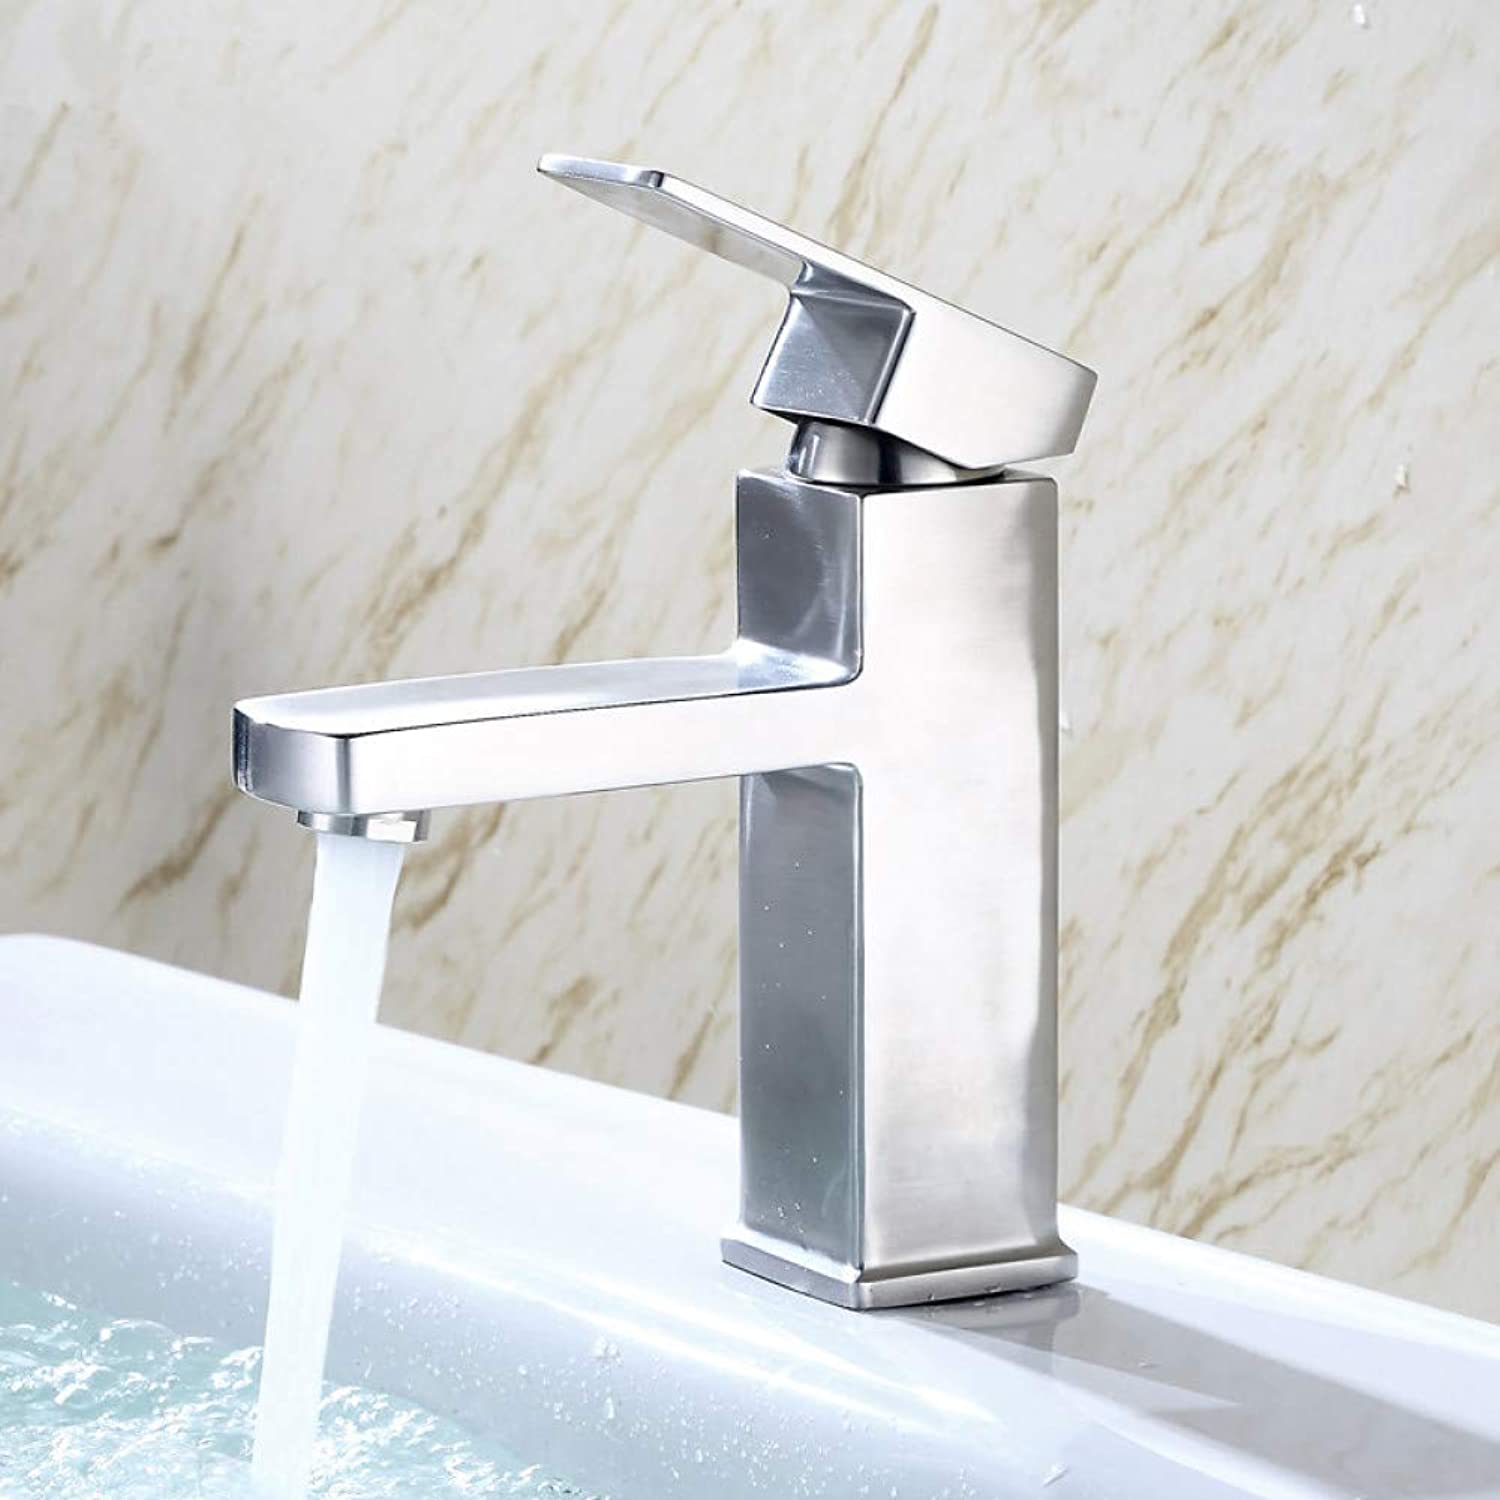 YHSGY Bathroom Sink Taps 304 Stainless Steel Basin Faucet Bathroom Mixer Tap Basin Faucets Hot and Cold Water Lead-Free with Hose